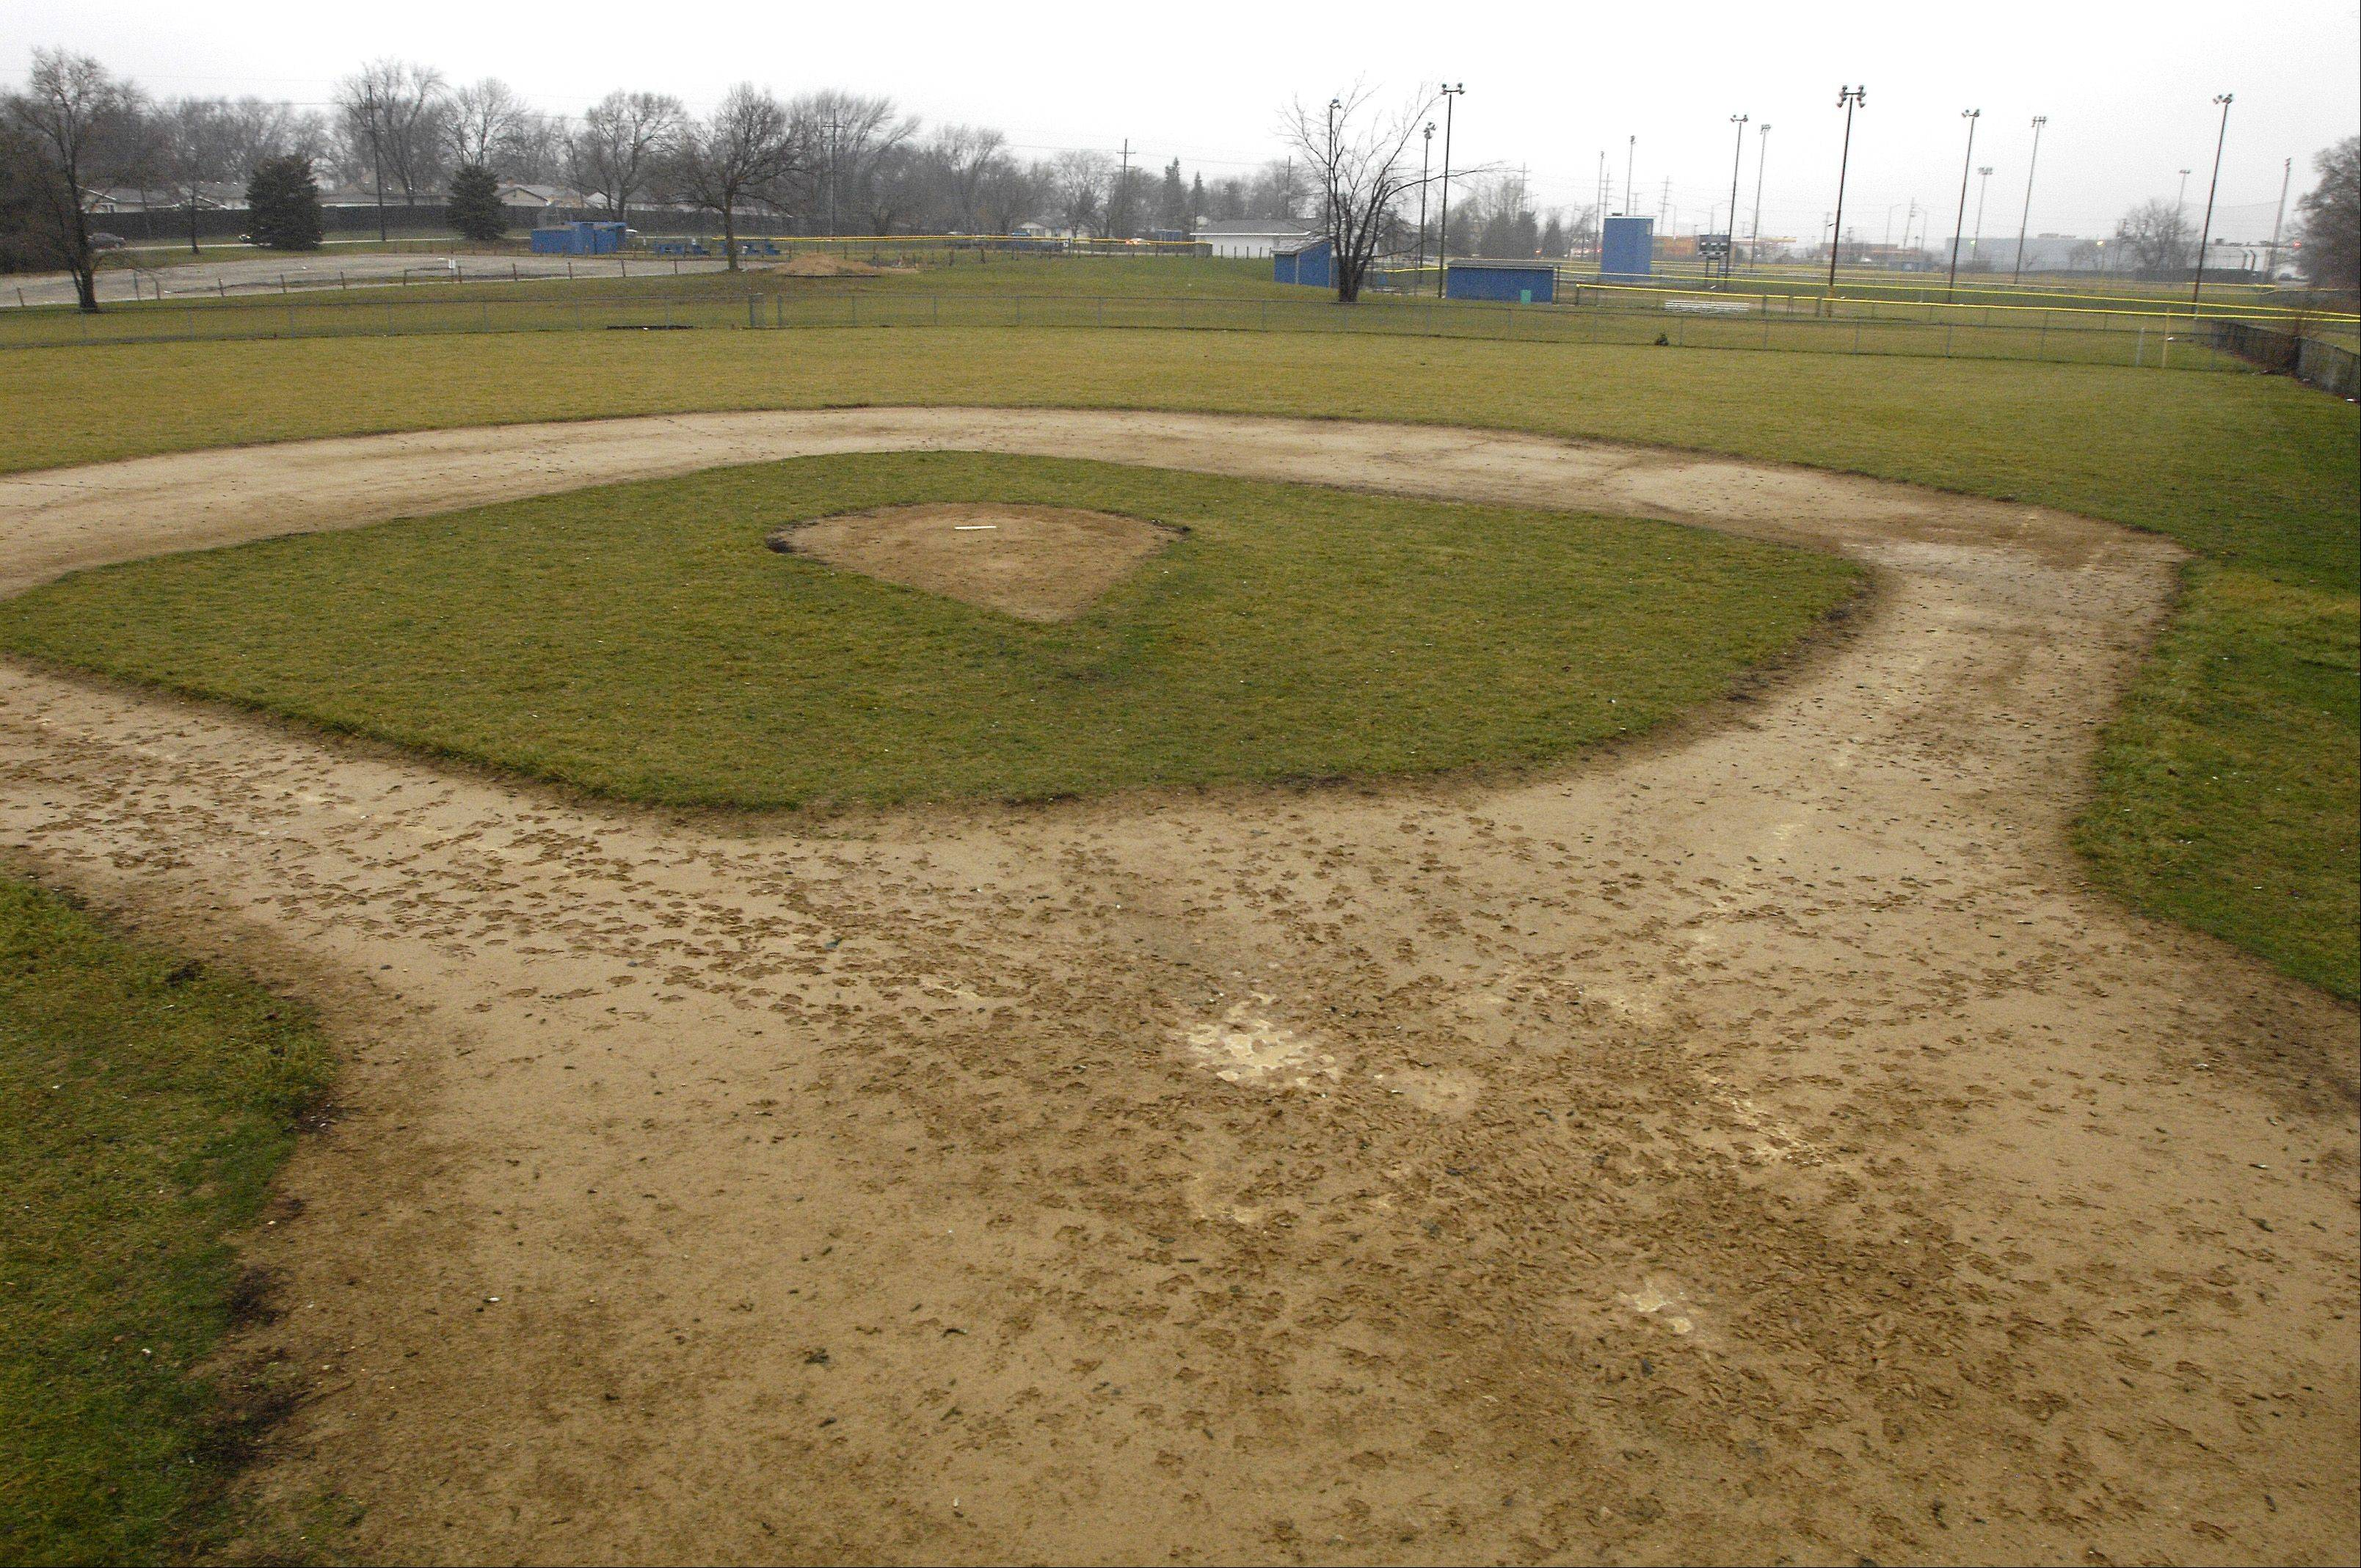 Baseball diamonds at the George J. Goergen Memorial Baseball Fields in Hanover Park sit on the property the village of Hanover Park recently agreed to lease for 39 years from the Metropolitan Water Reclamation District. The village now is awaiting results from soil samples to determine whether the site can accommodate a soccer field.